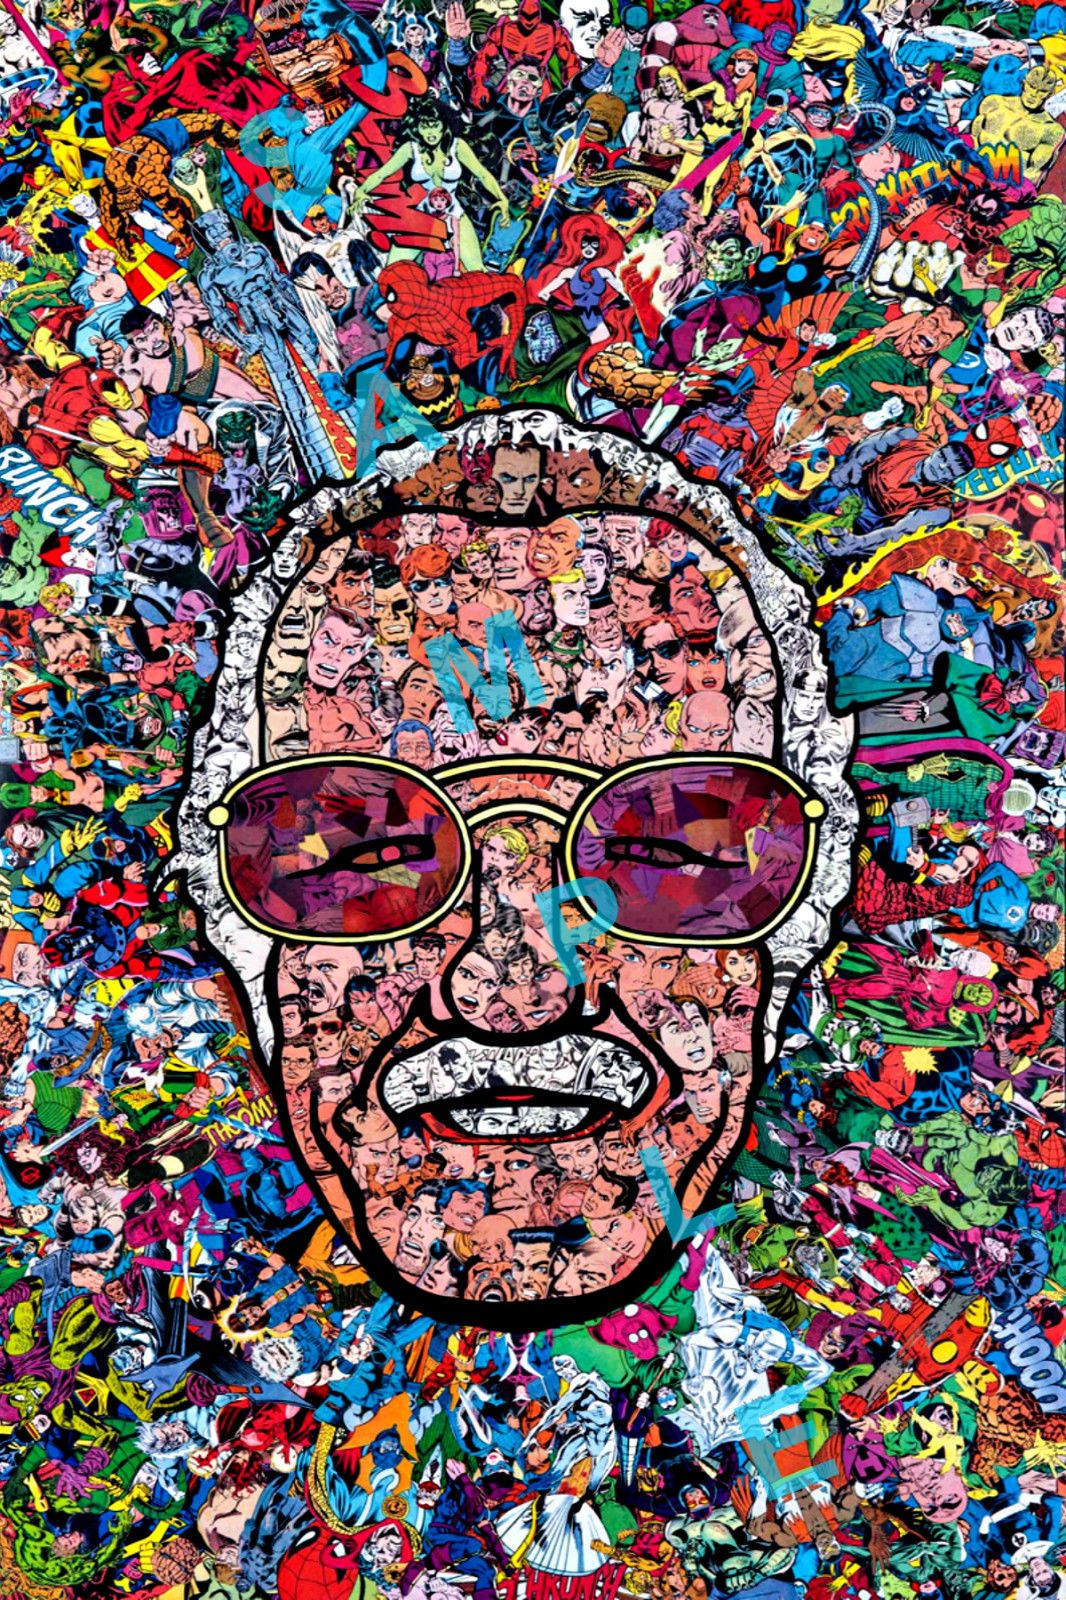 Details about STAN LEE 12×18 HEROES FACES ART POSTER SPIDERMAN MARVEL HULK THOR AVENGERS